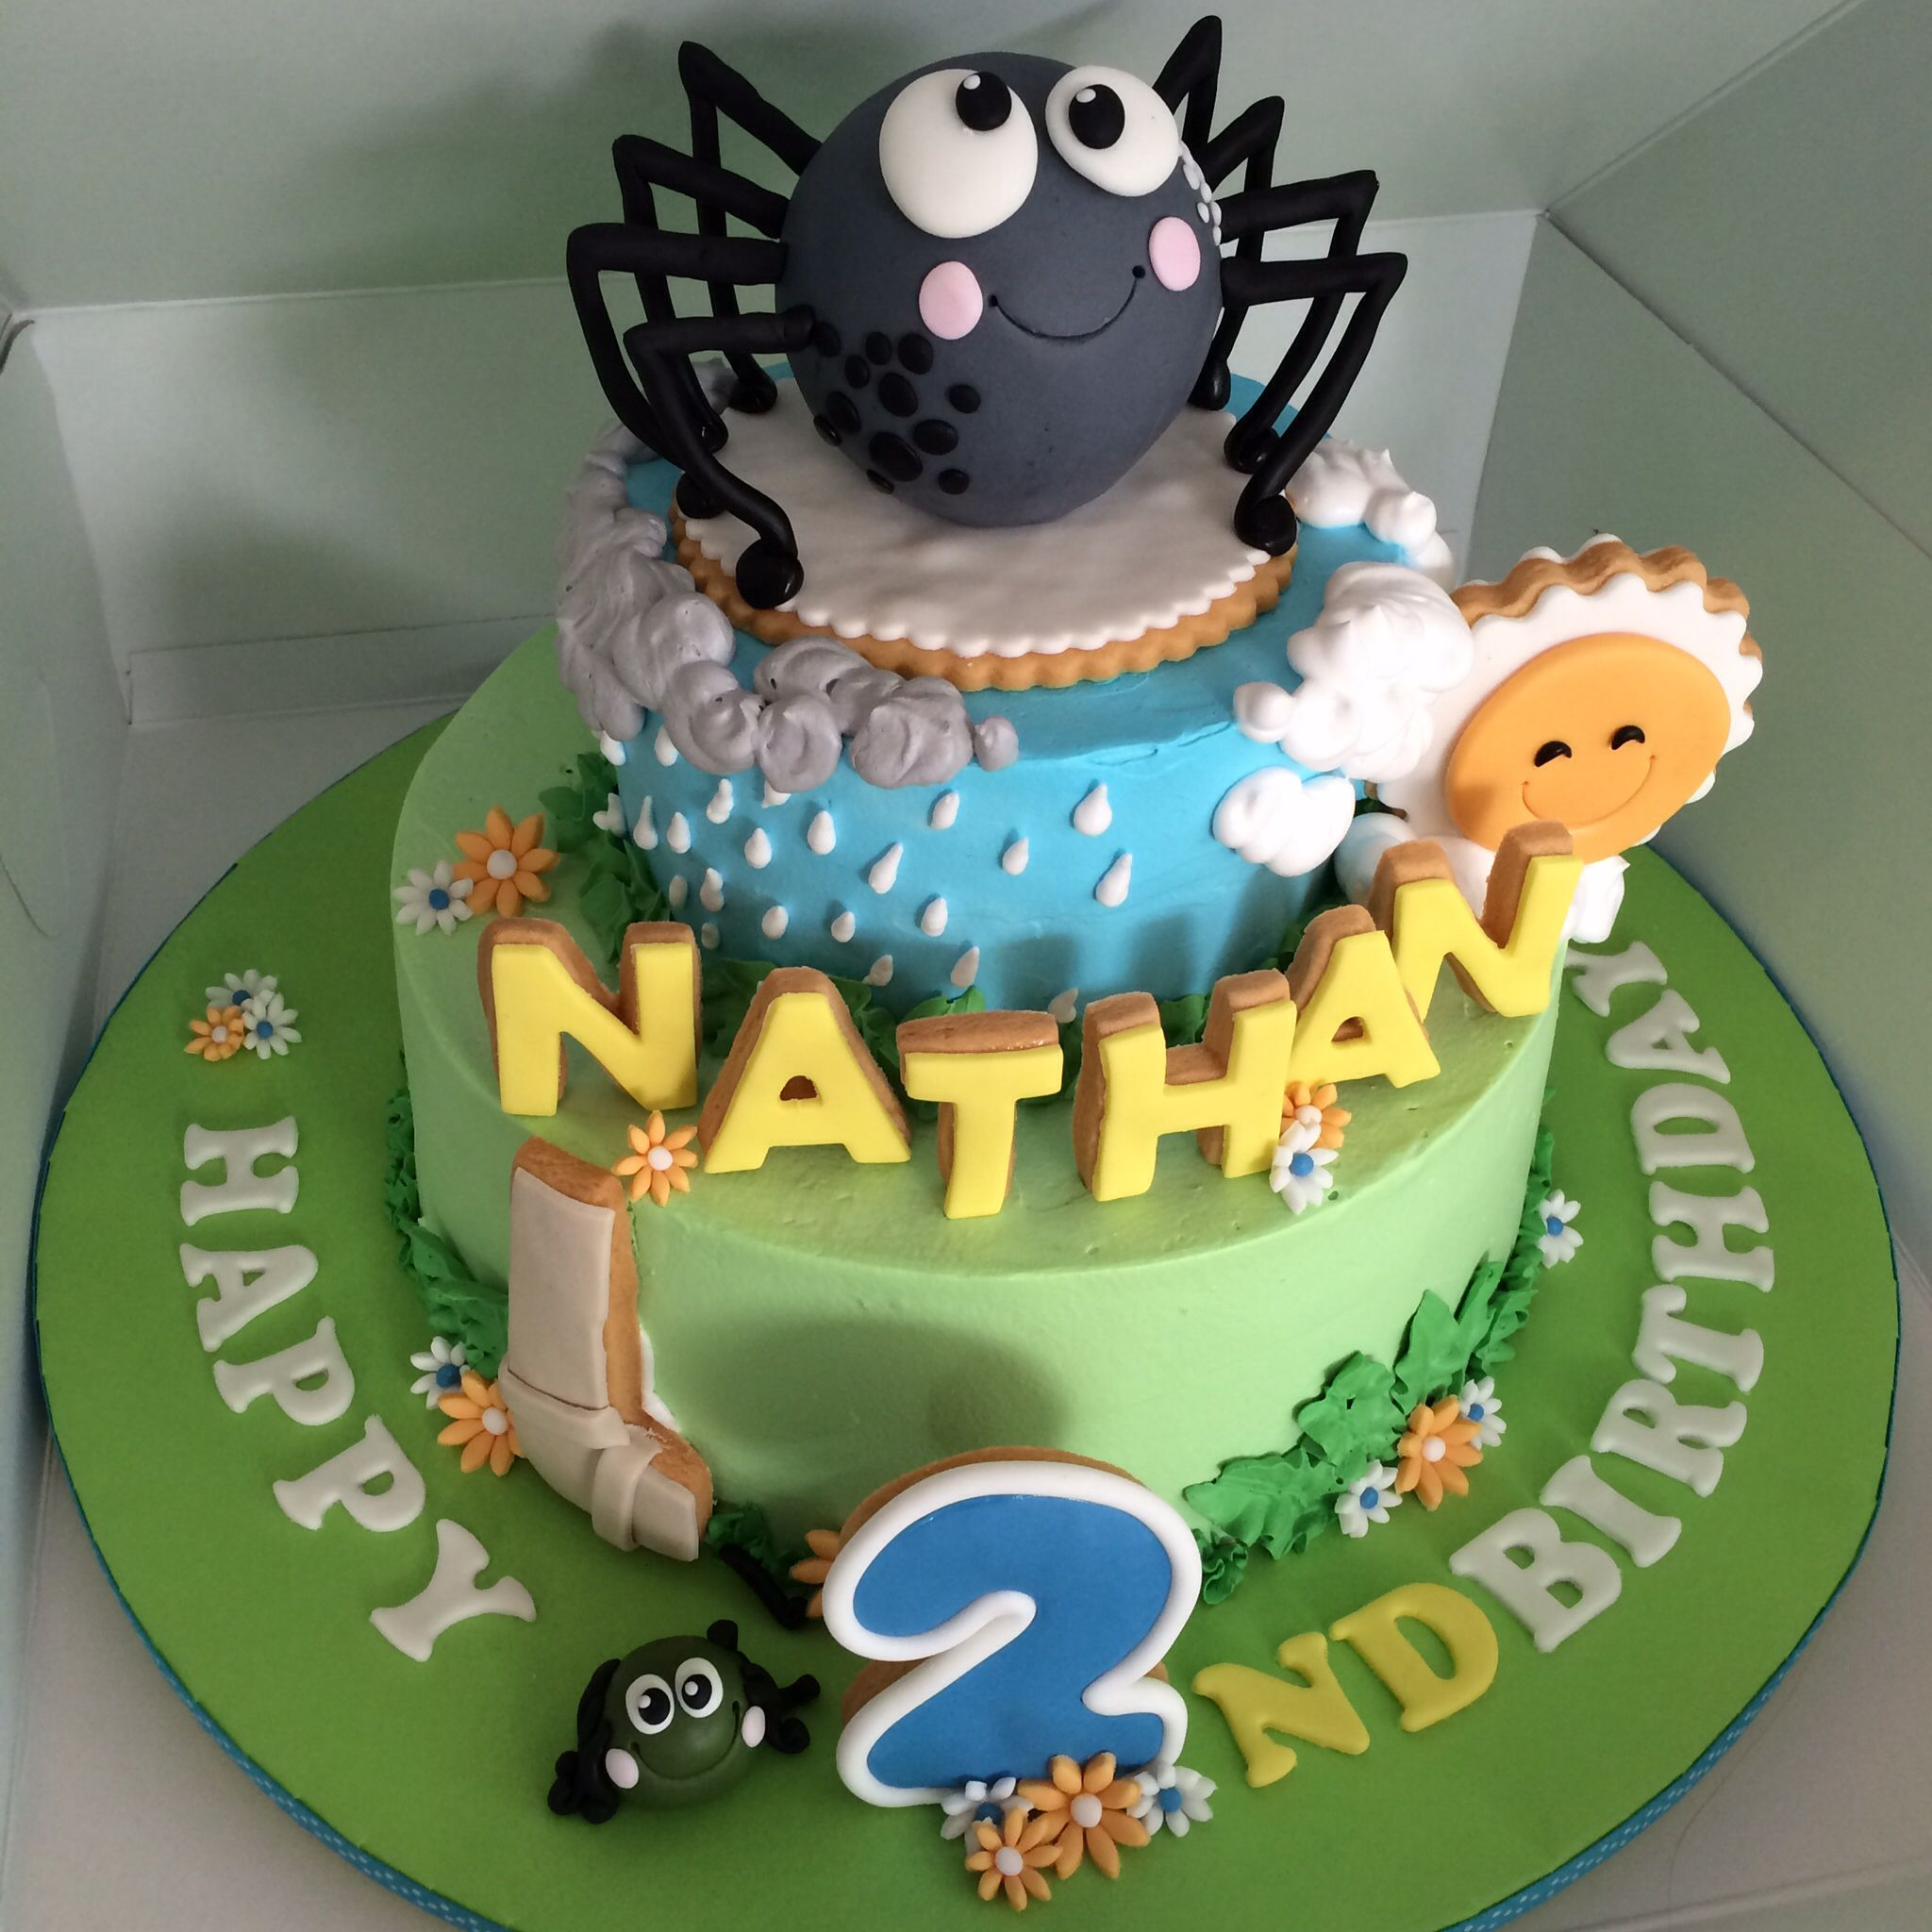 Fine Incy Wincy Spider Cake With Images Spider Cake Itsy Bitsy Funny Birthday Cards Online Inifofree Goldxyz